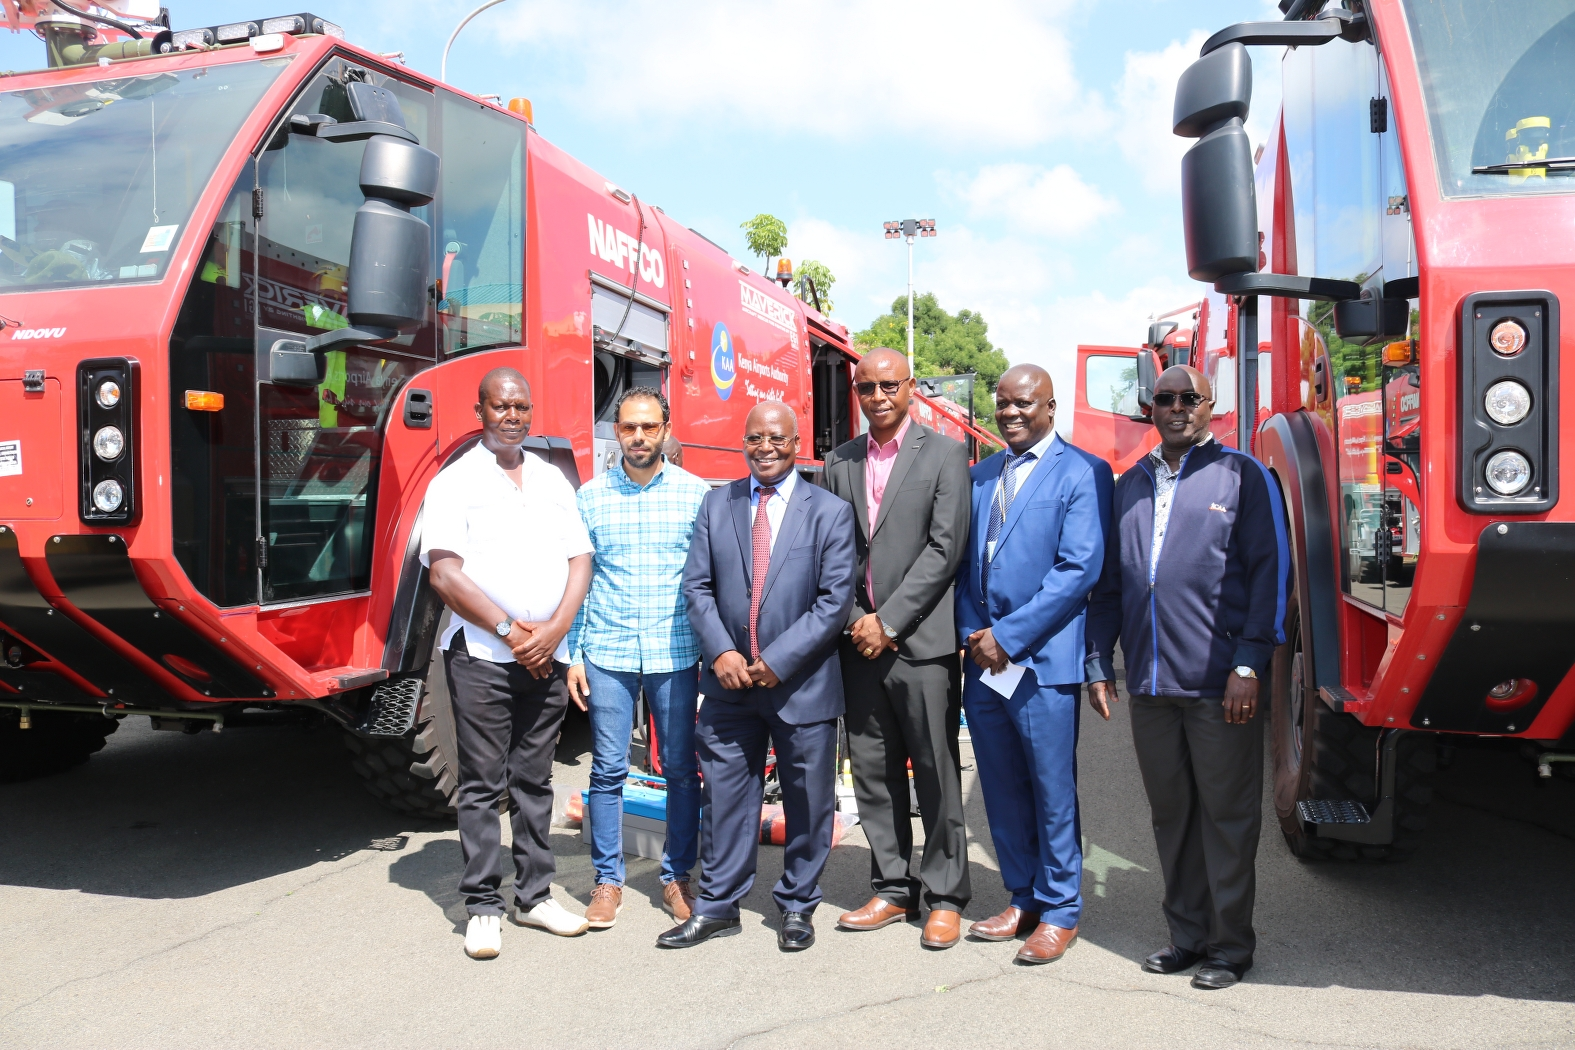 The rescue and fire-fighting trucks Kenya Airports Authority (KAA) acquired at a cost of Ksh 369 million. www.businesstoday.co.ke